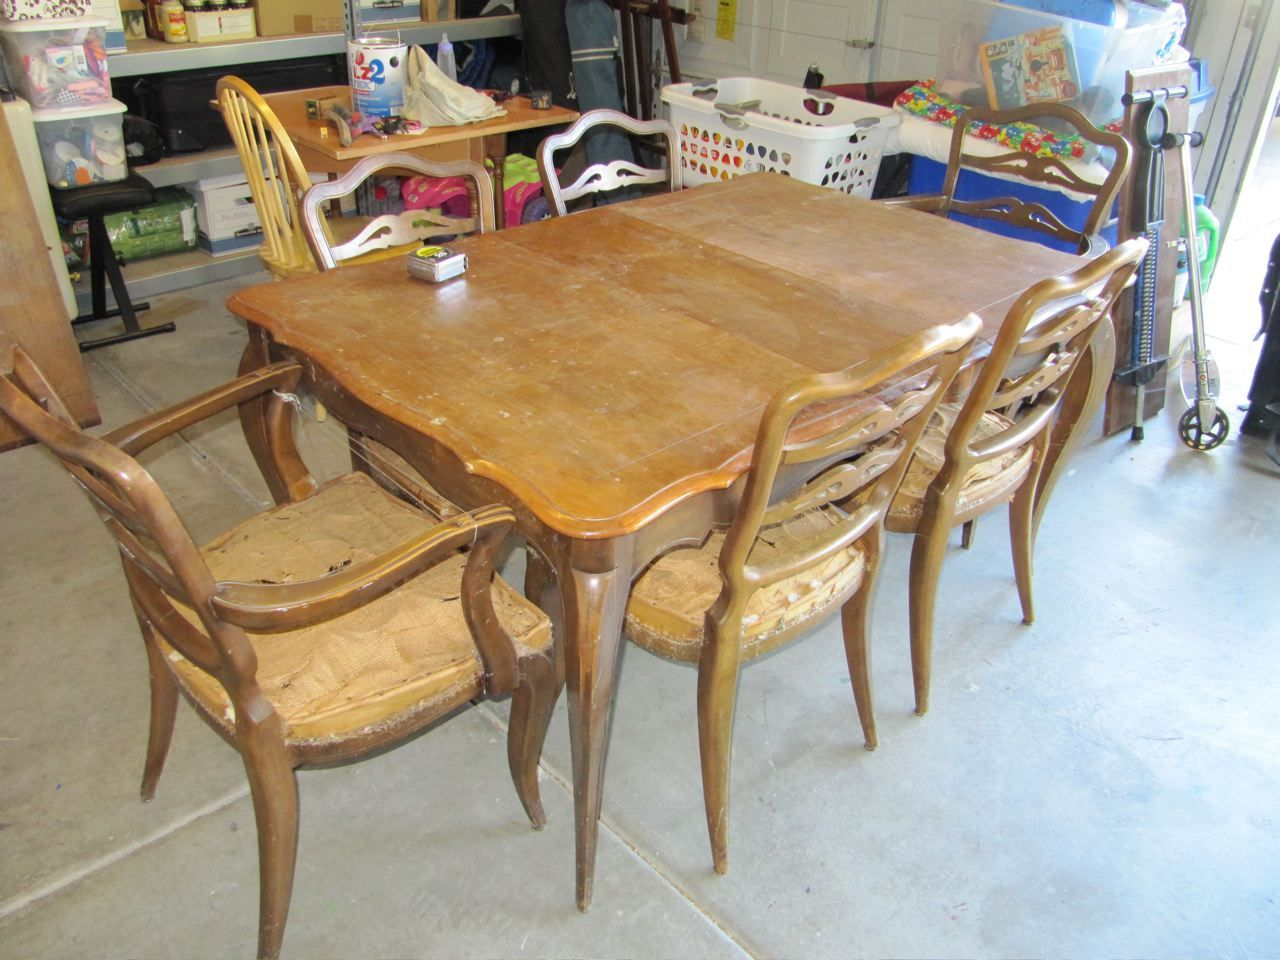 37+ Craigslist dining table and chairs Top